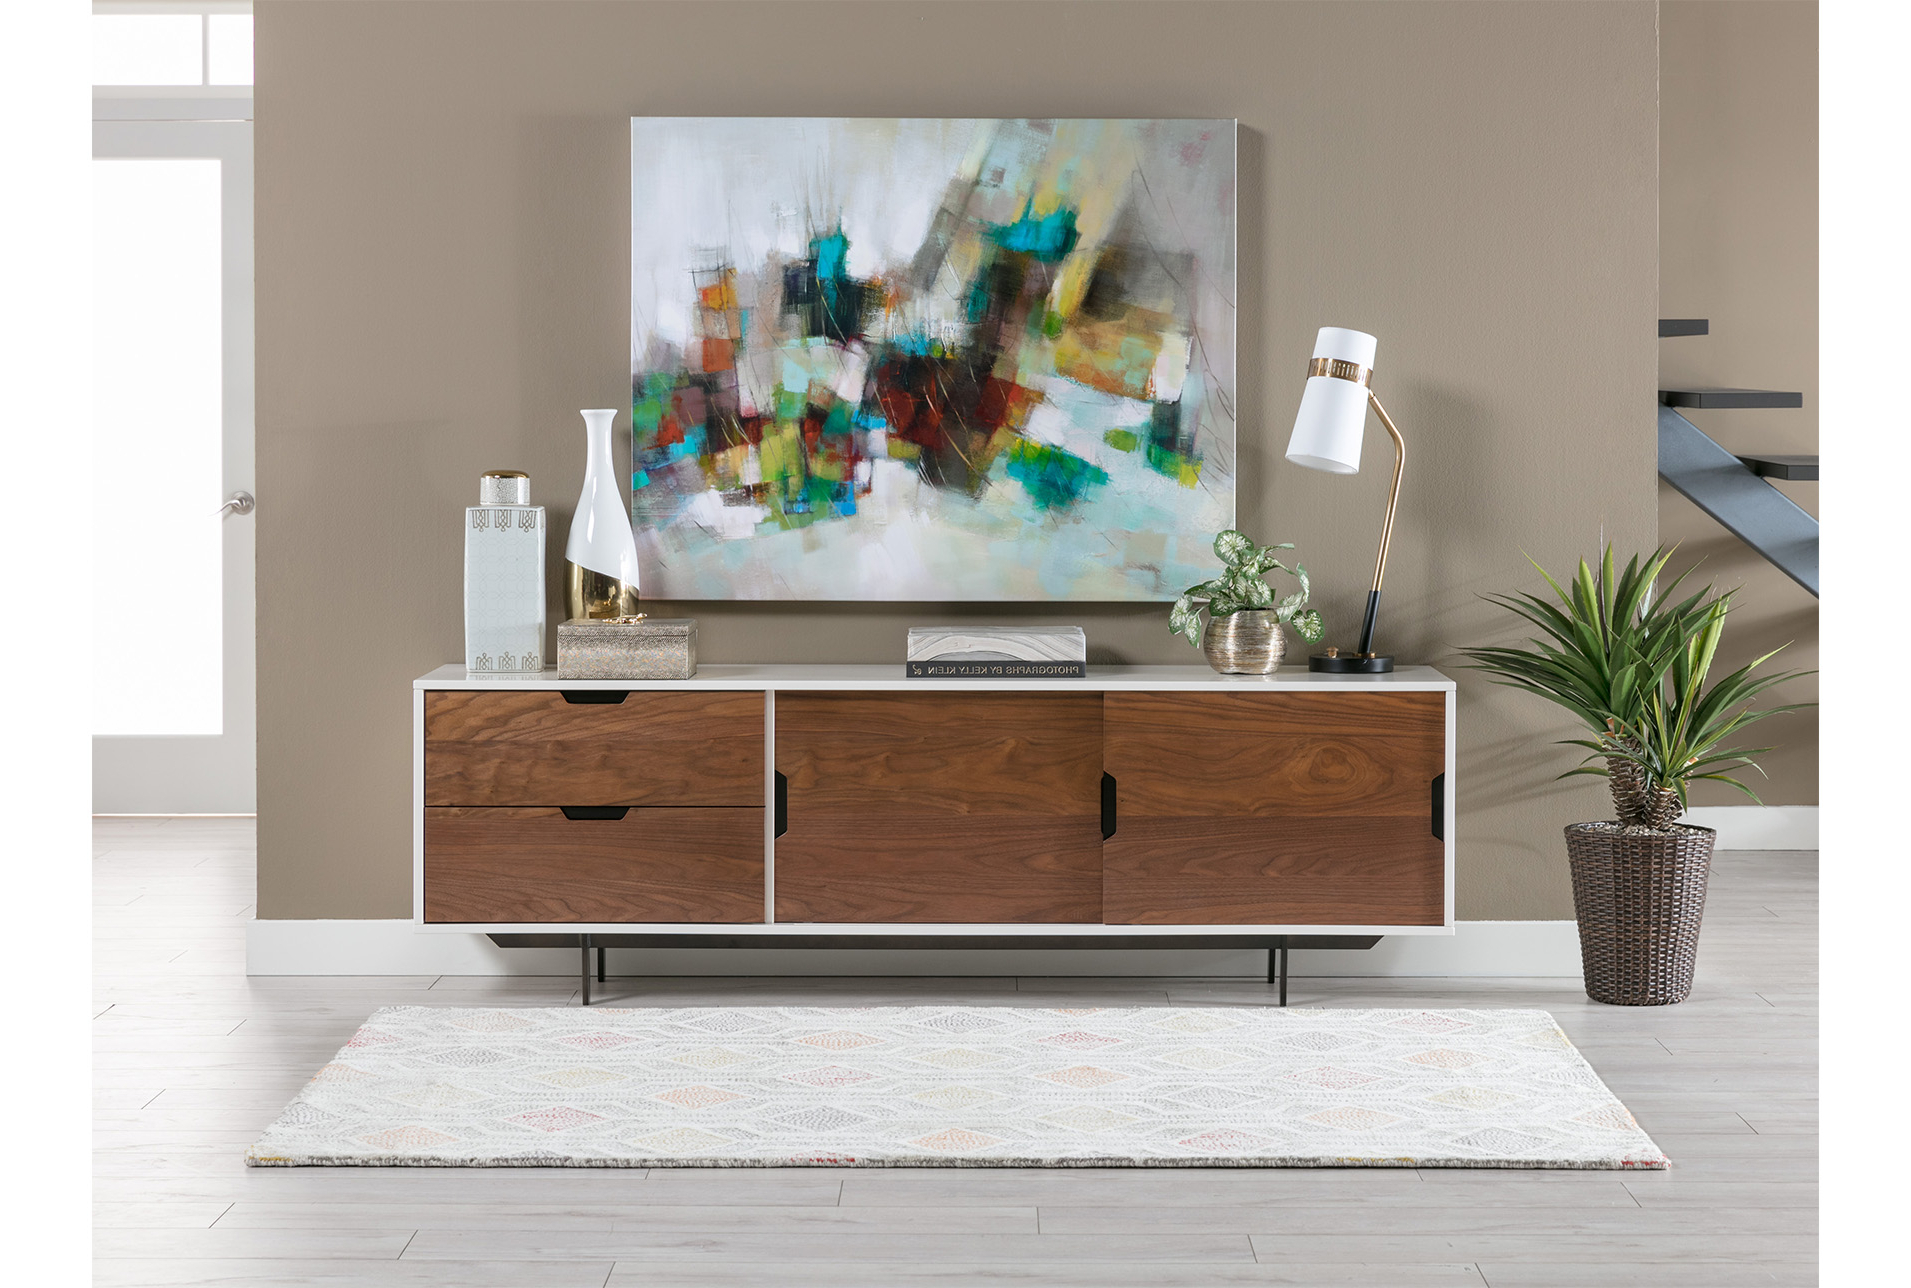 Bale 82 Inch Tv Stand | Products | Living Room, Room, Home Living Room Pertaining To Bale 82 Inch Tv Stands (View 12 of 20)